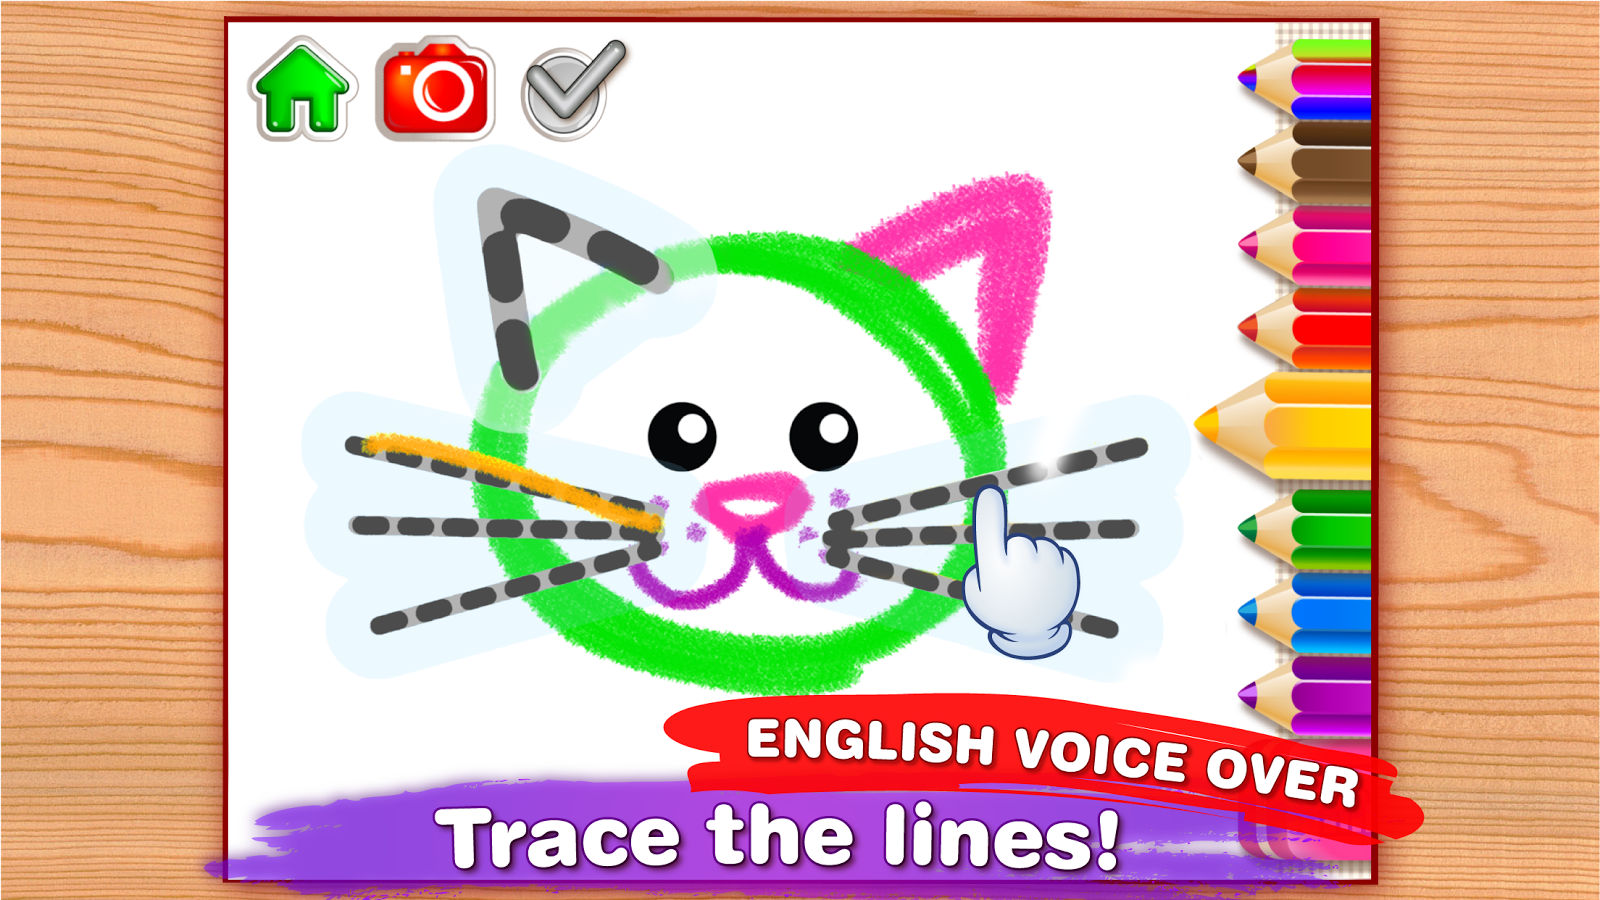 princess coloring games to play : Painting Games For Kids Girls Android Apps On Google Play Download Image Princess Coloring